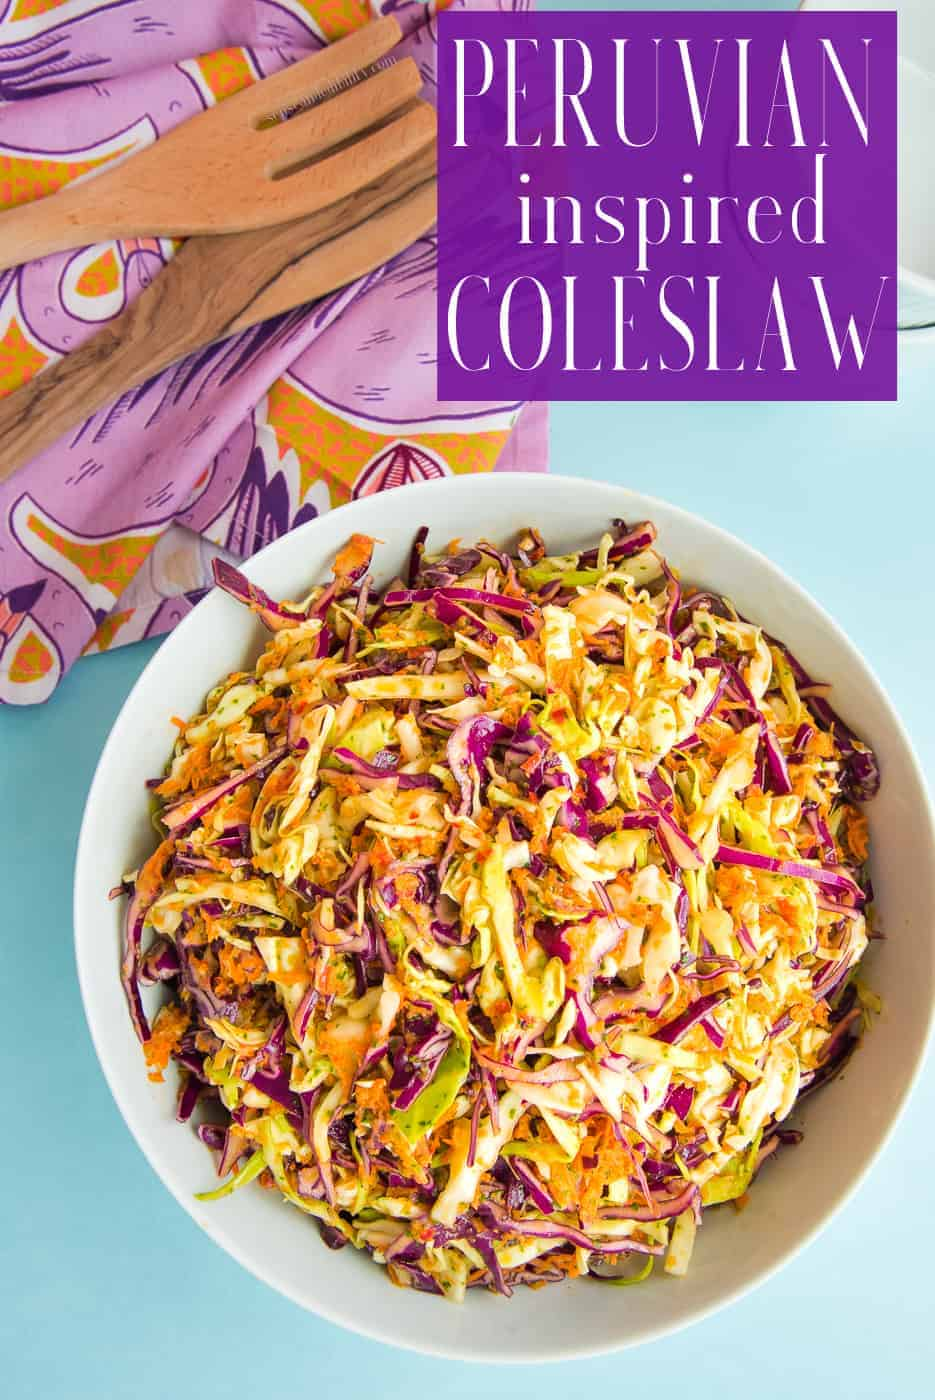 Peruvian inspired coleslaw combines the bright flavors of Peruvian green sauce in a mayo-less dressing. Great for cookouts or BBQs it's make-ahead friendly, as well as vegan, and gluten-free. #coleslaw #Peruvian #Peruviangreensauce #sidedishes #sides #cabbage #nomayo #accompaniments #BBQsides #CookOutsides #cookoutrecipes #BBQrecipes #glutenfree #vegan #blackfoodblogger #PuertoRicanrecipewriter  via @ediblesense